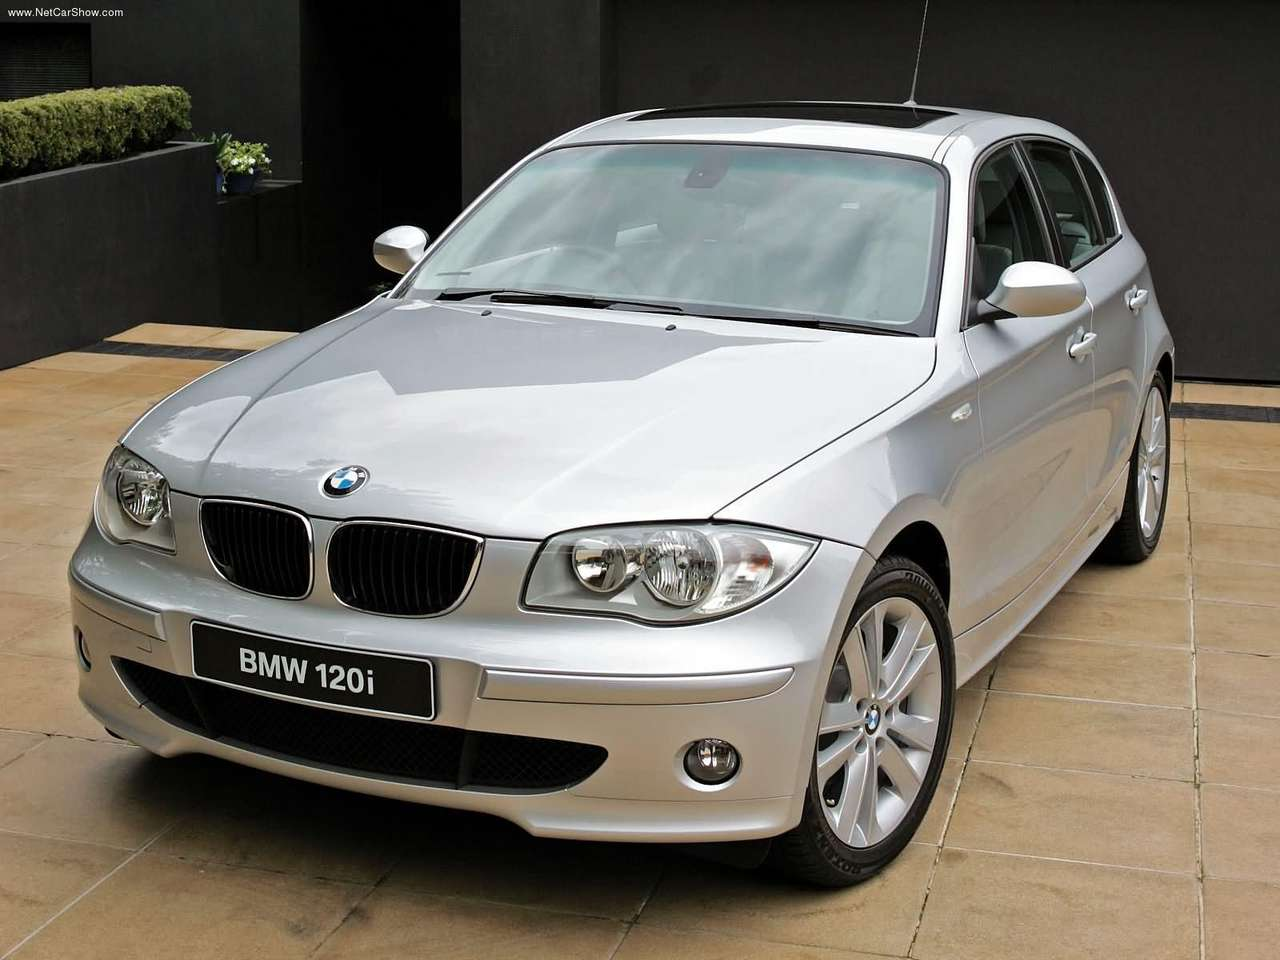 2005 BMW 120i UK Version